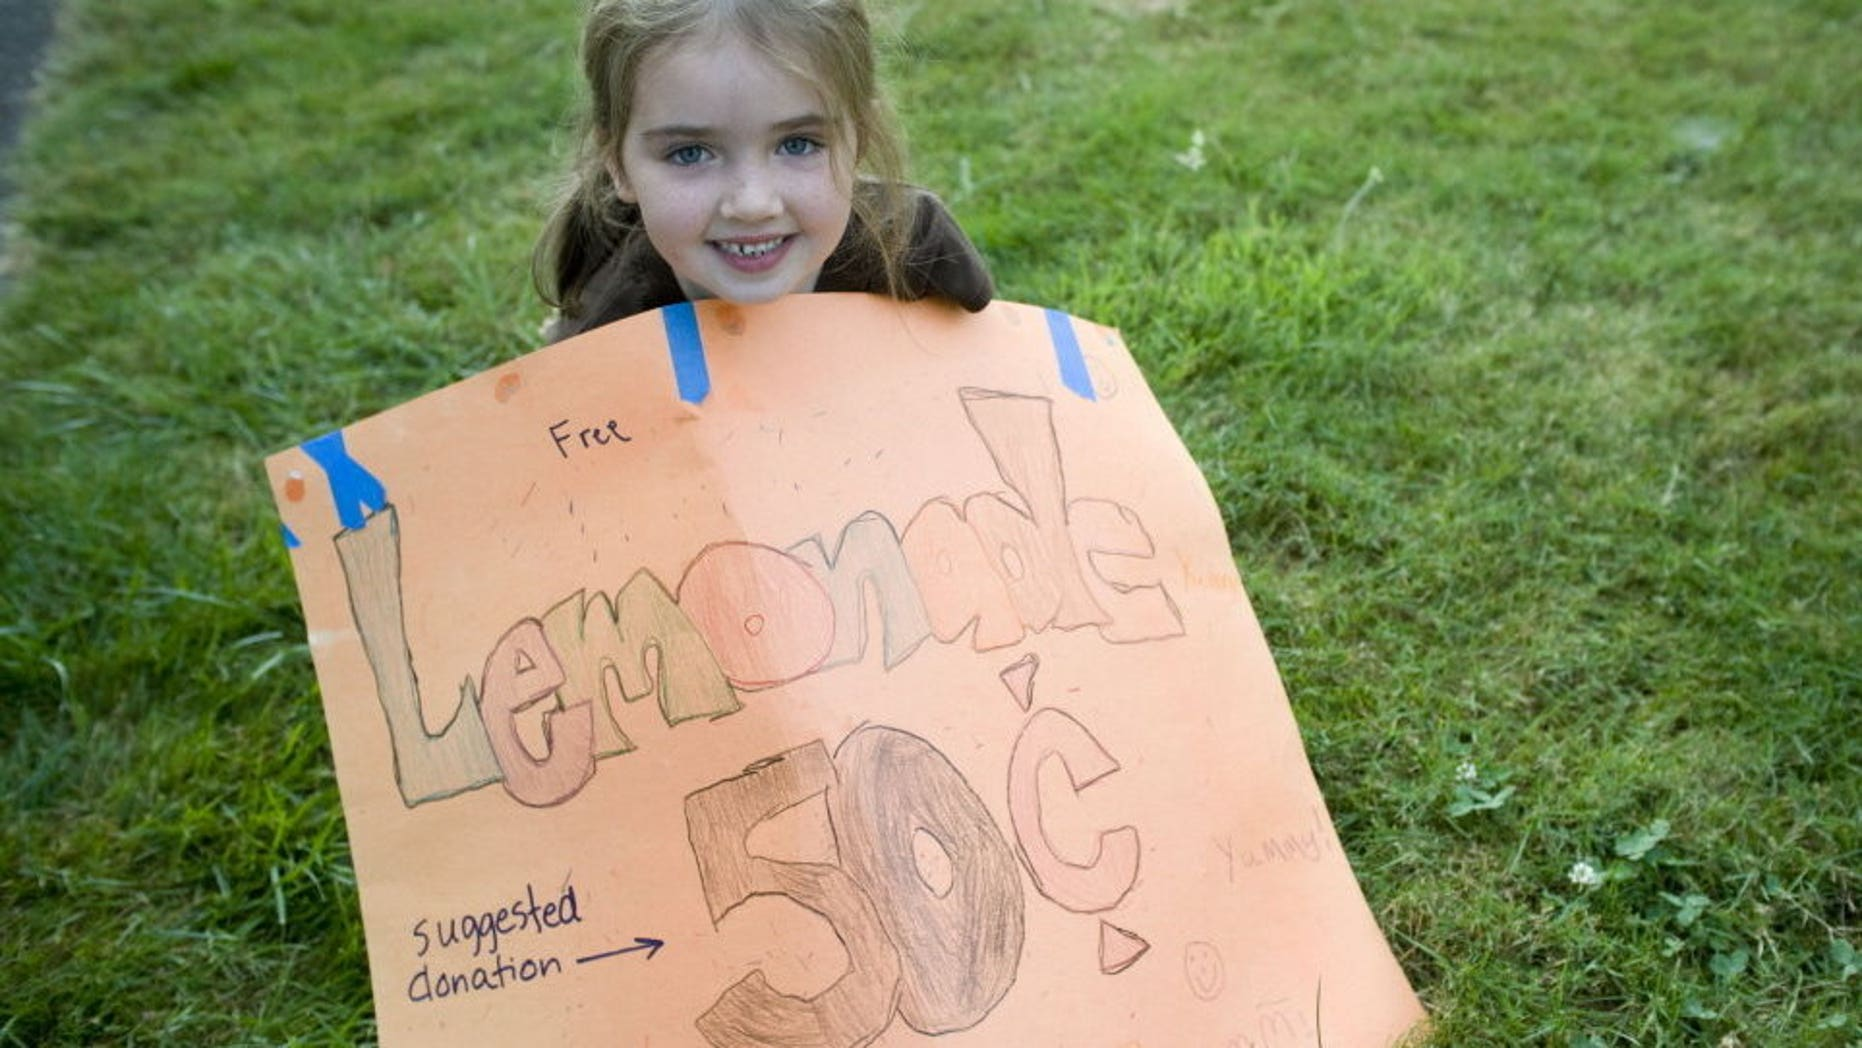 Inspectors told 7-year-old Julie Murphy that she needed a license to run her lemonade stand at a monthly art fair.